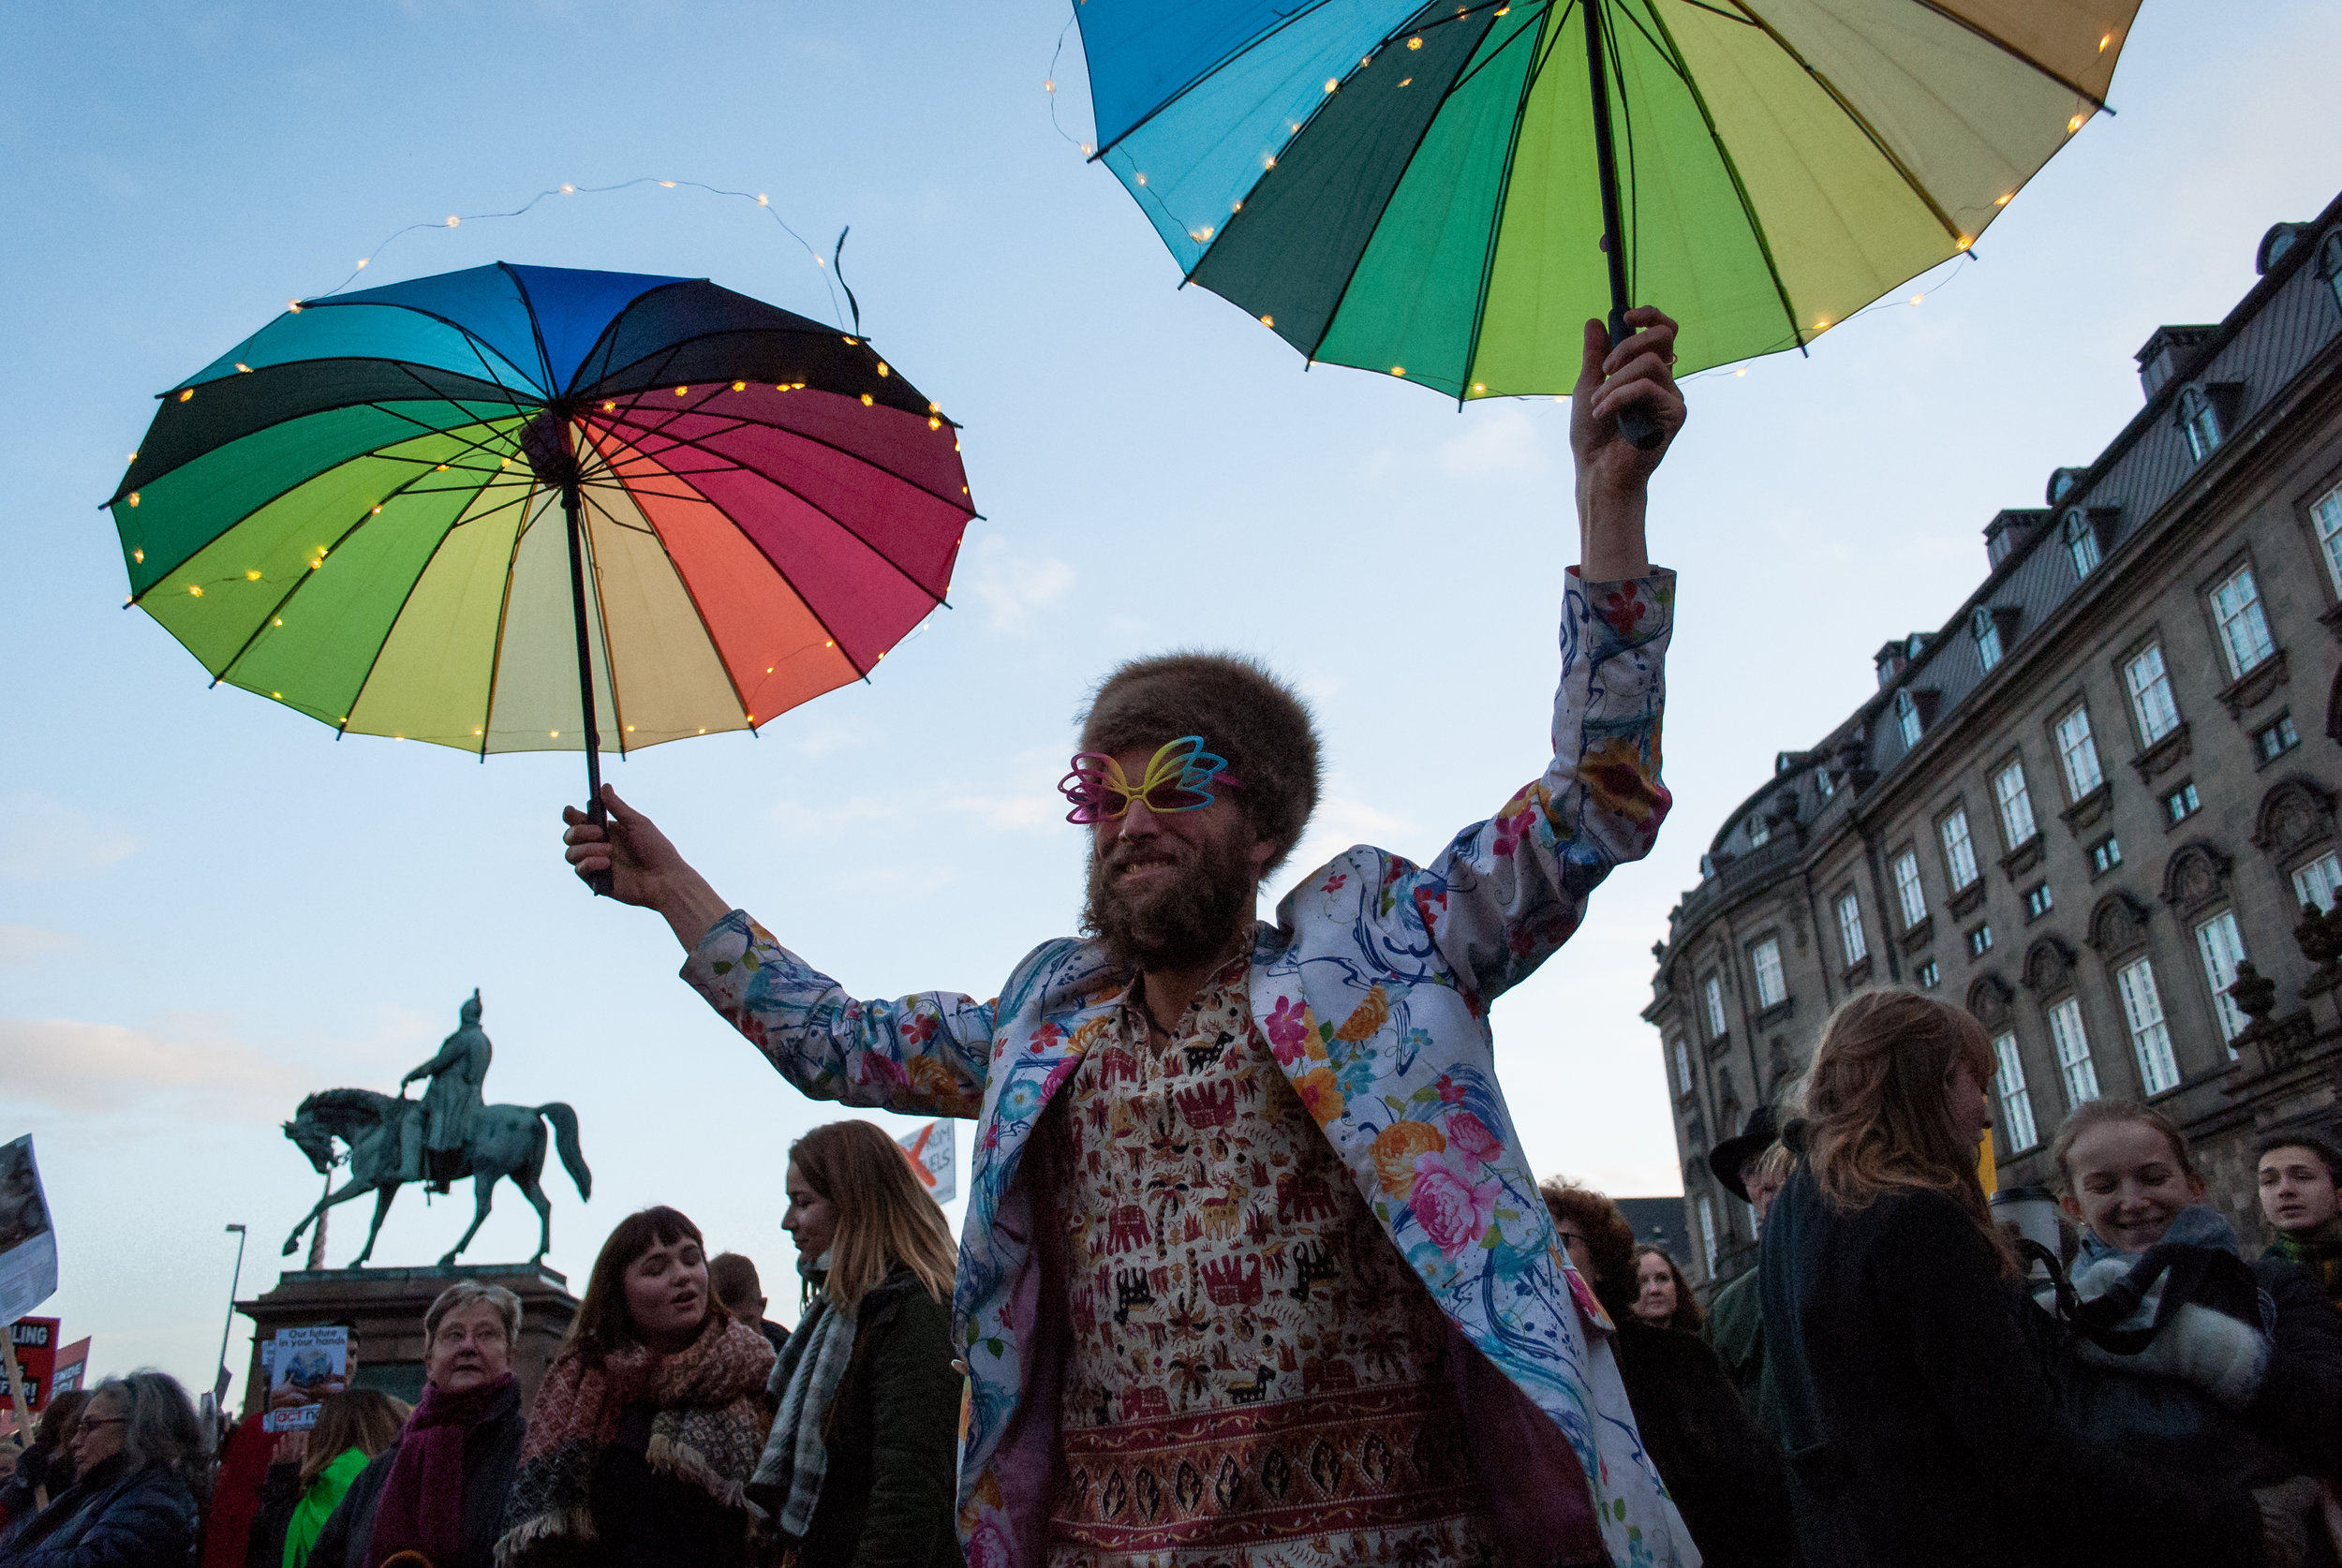 Global climate 2015 (Paris): thousands marched in Copenhagen to call for a strong deal in Paris that will see a swift transition from fossil fuels to renewable energy.